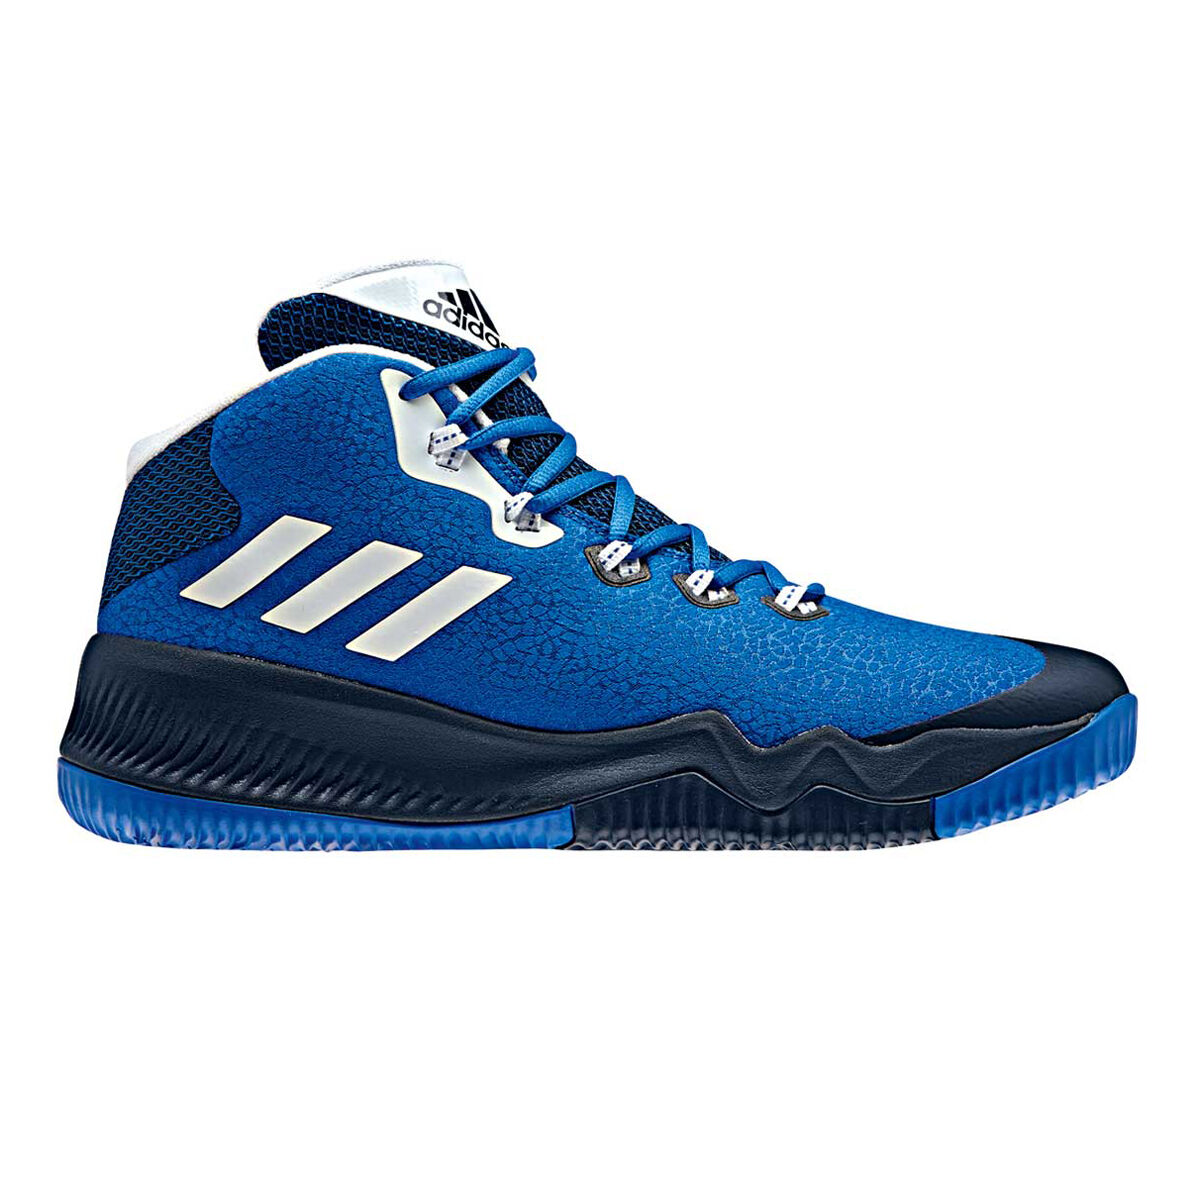 innovative design 5c653 b7f98 ... top quality adidas crazy hustle mens basketball shoes blue navy us 9  blue navy 974e9 0e99c